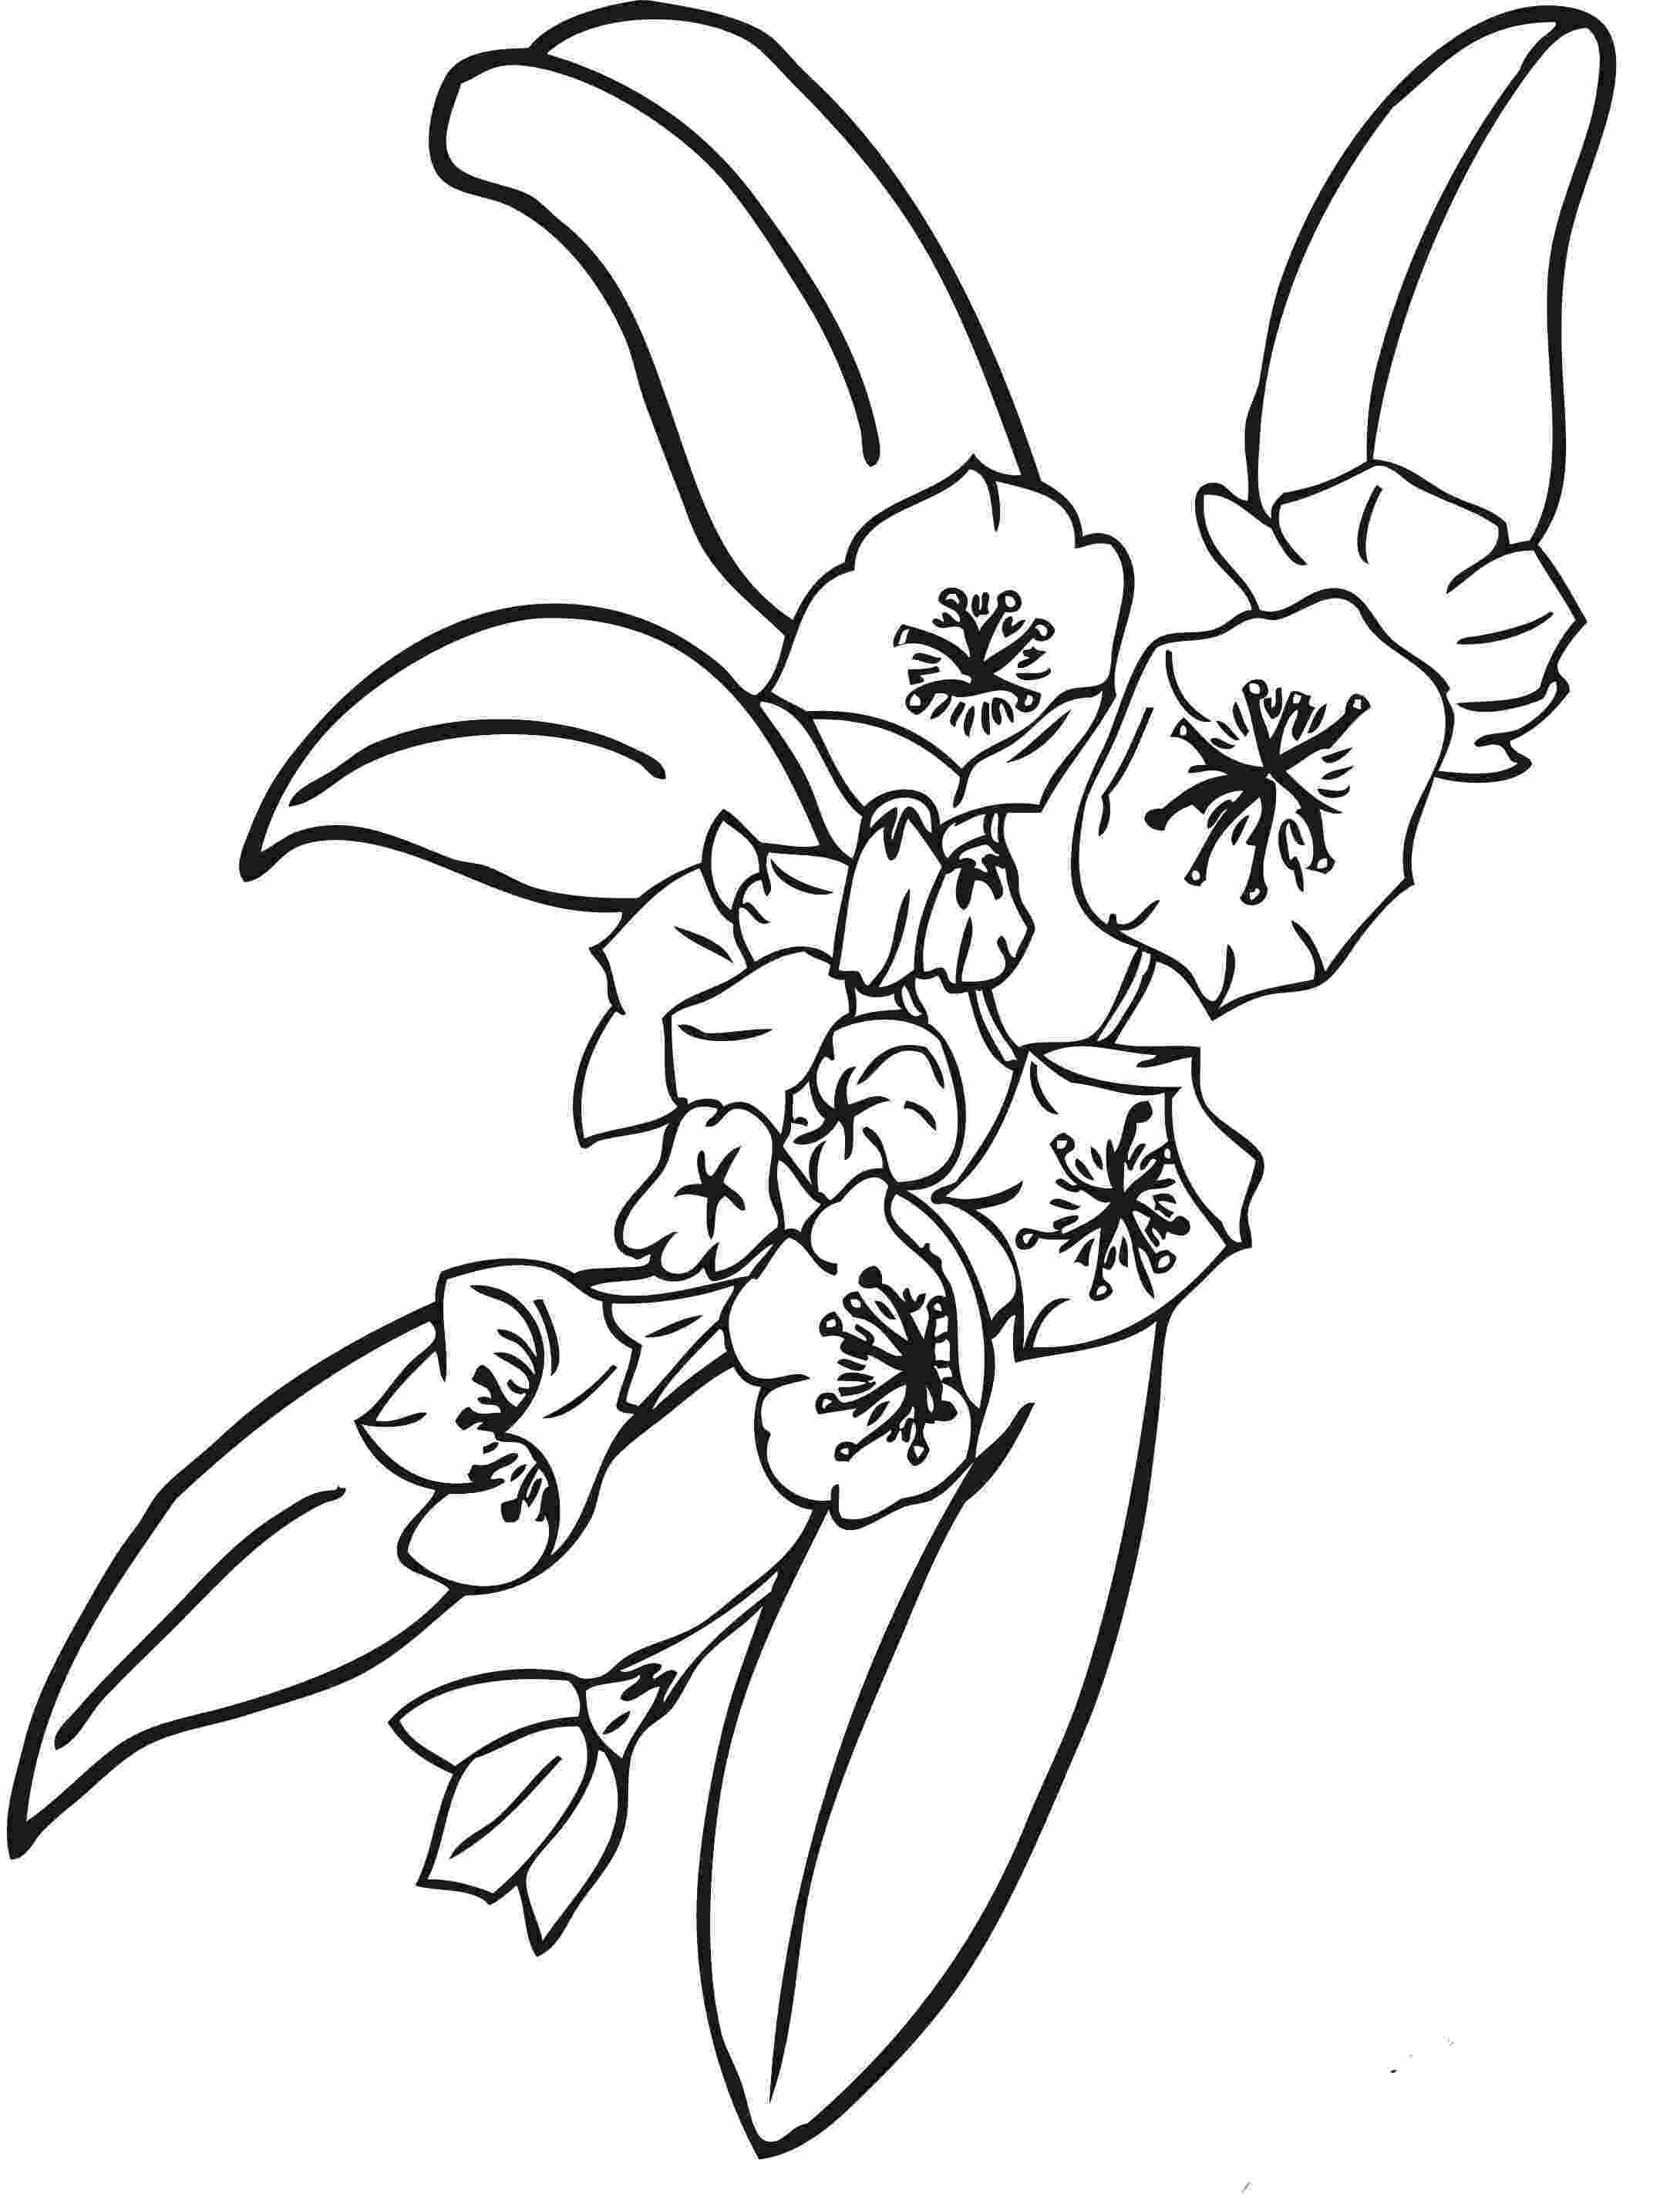 pictures of flowers to color free printables sunflower to color free pictures flowers to color of printables